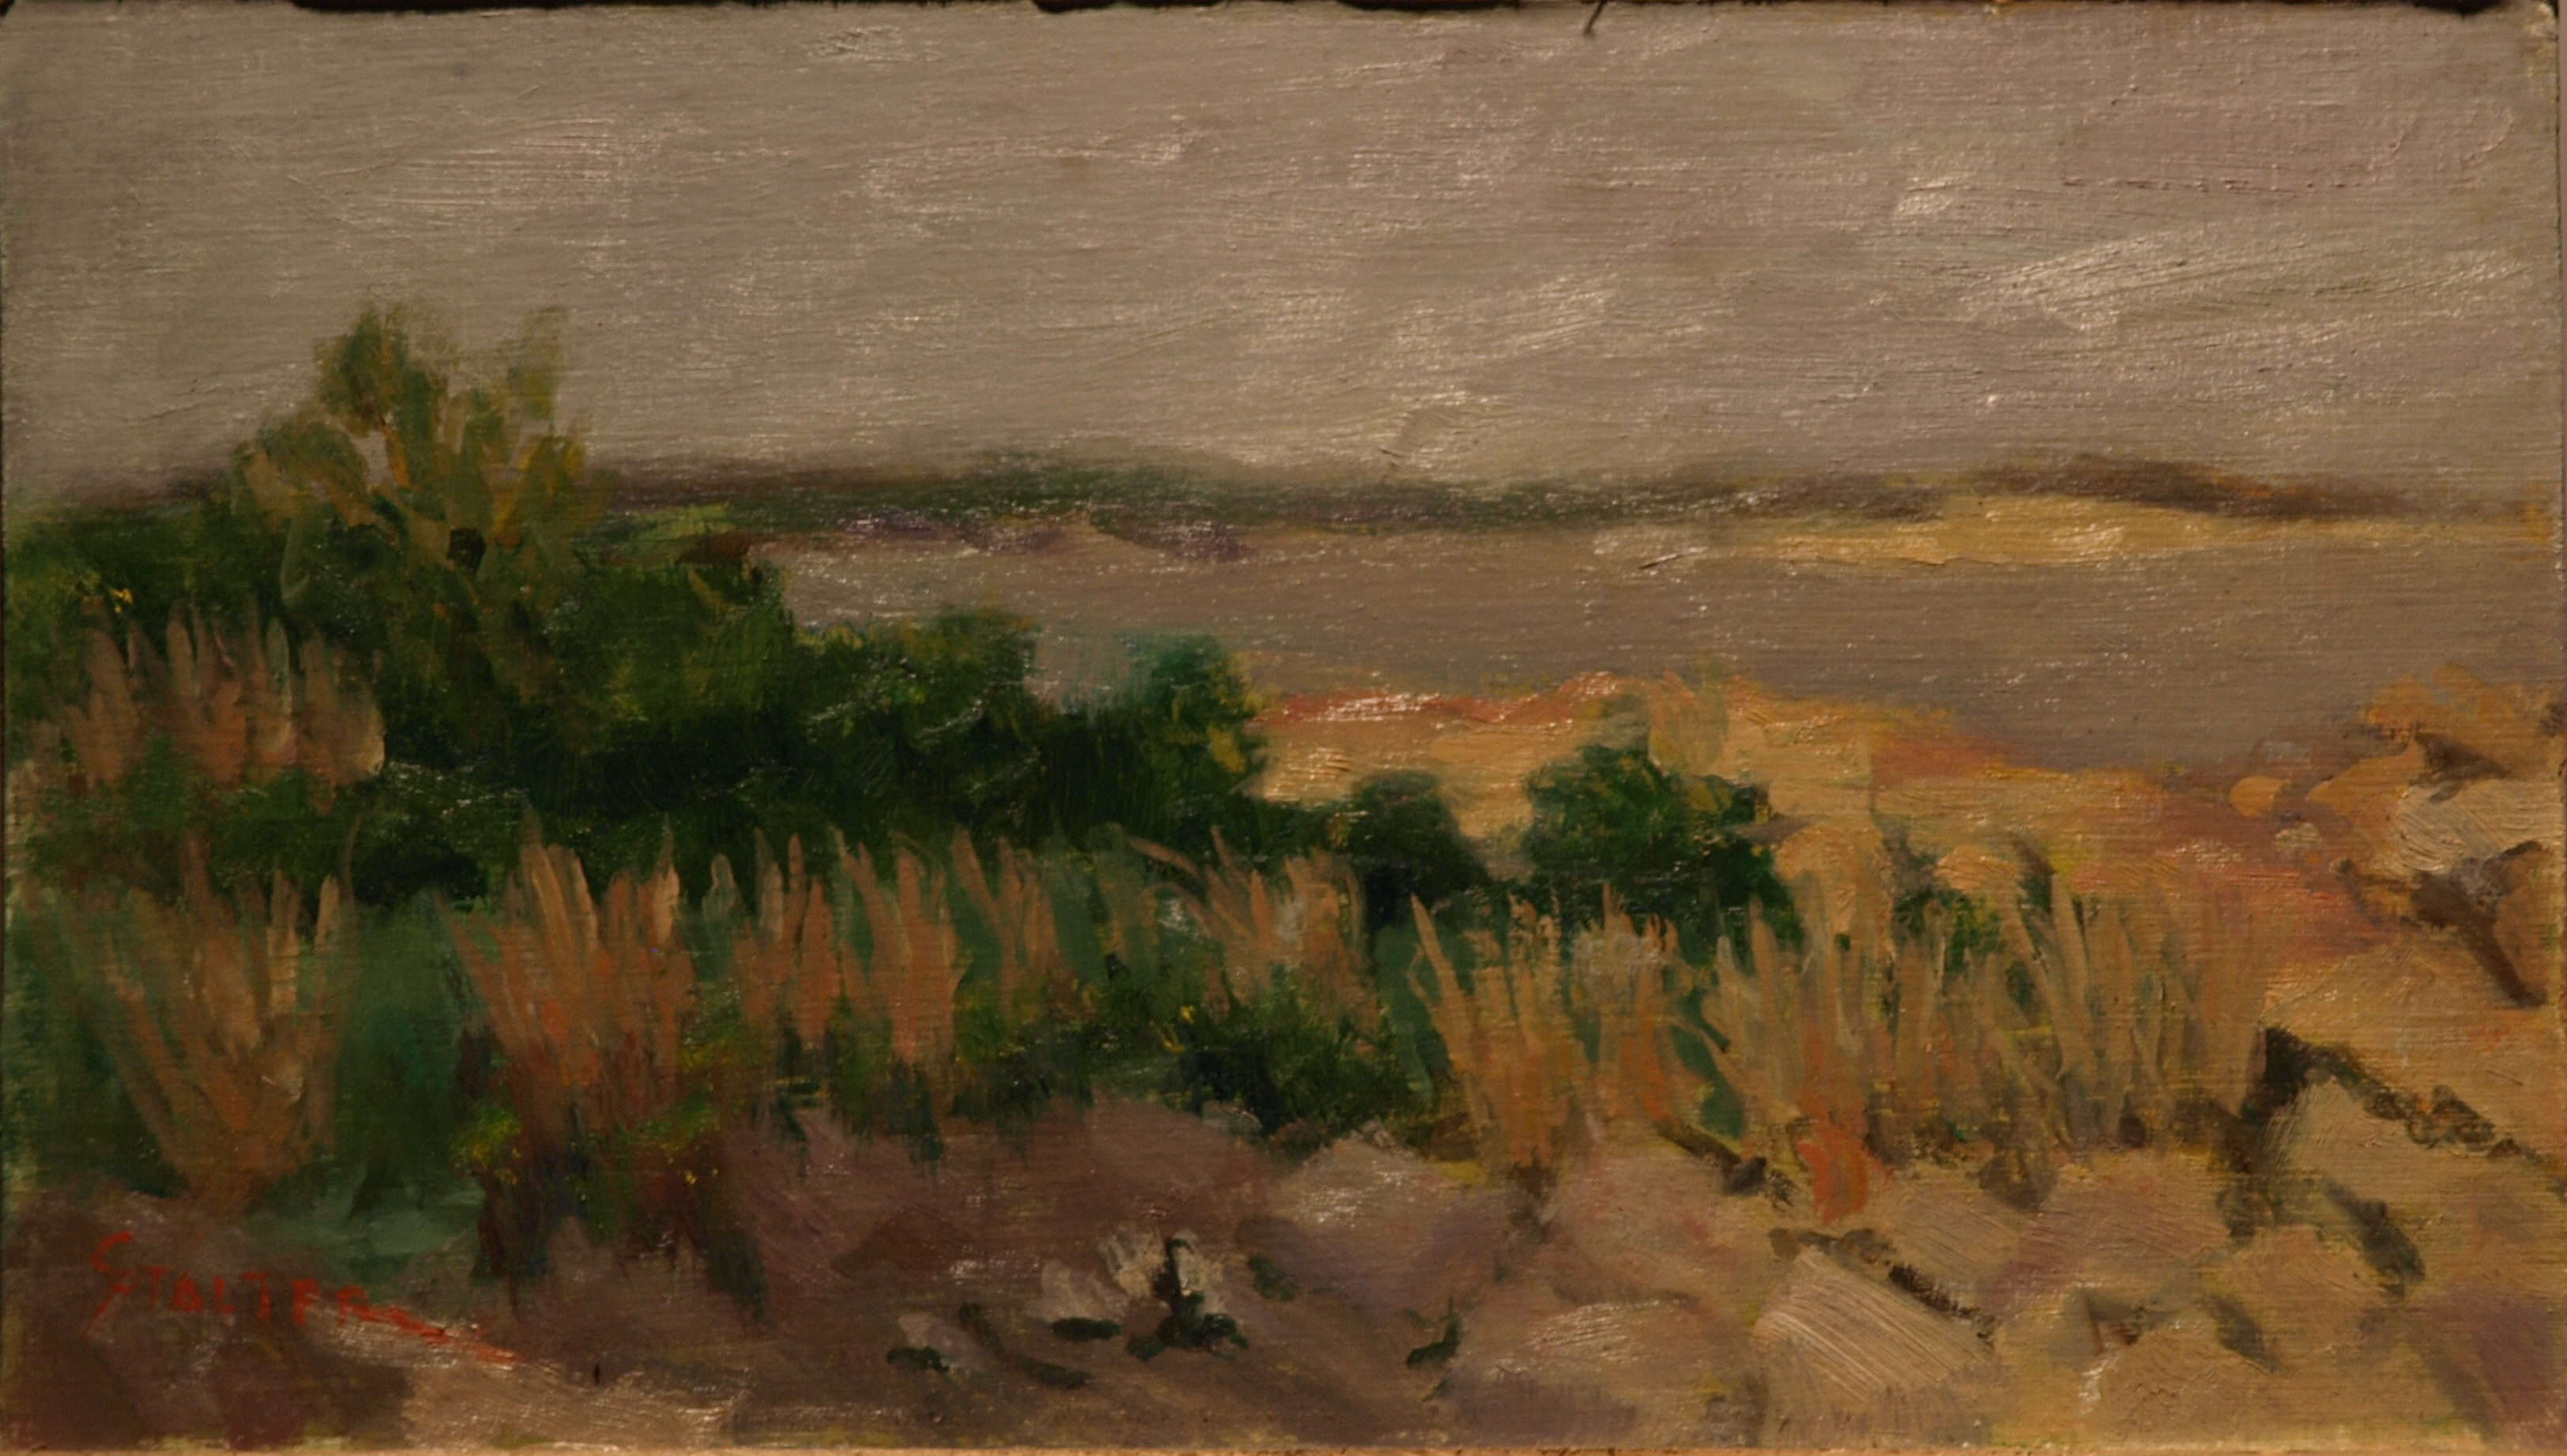 Stonington Marsh # 3, Oil on Linen on Panel, 8 x 14 Inches, by Richard Stalter, $225